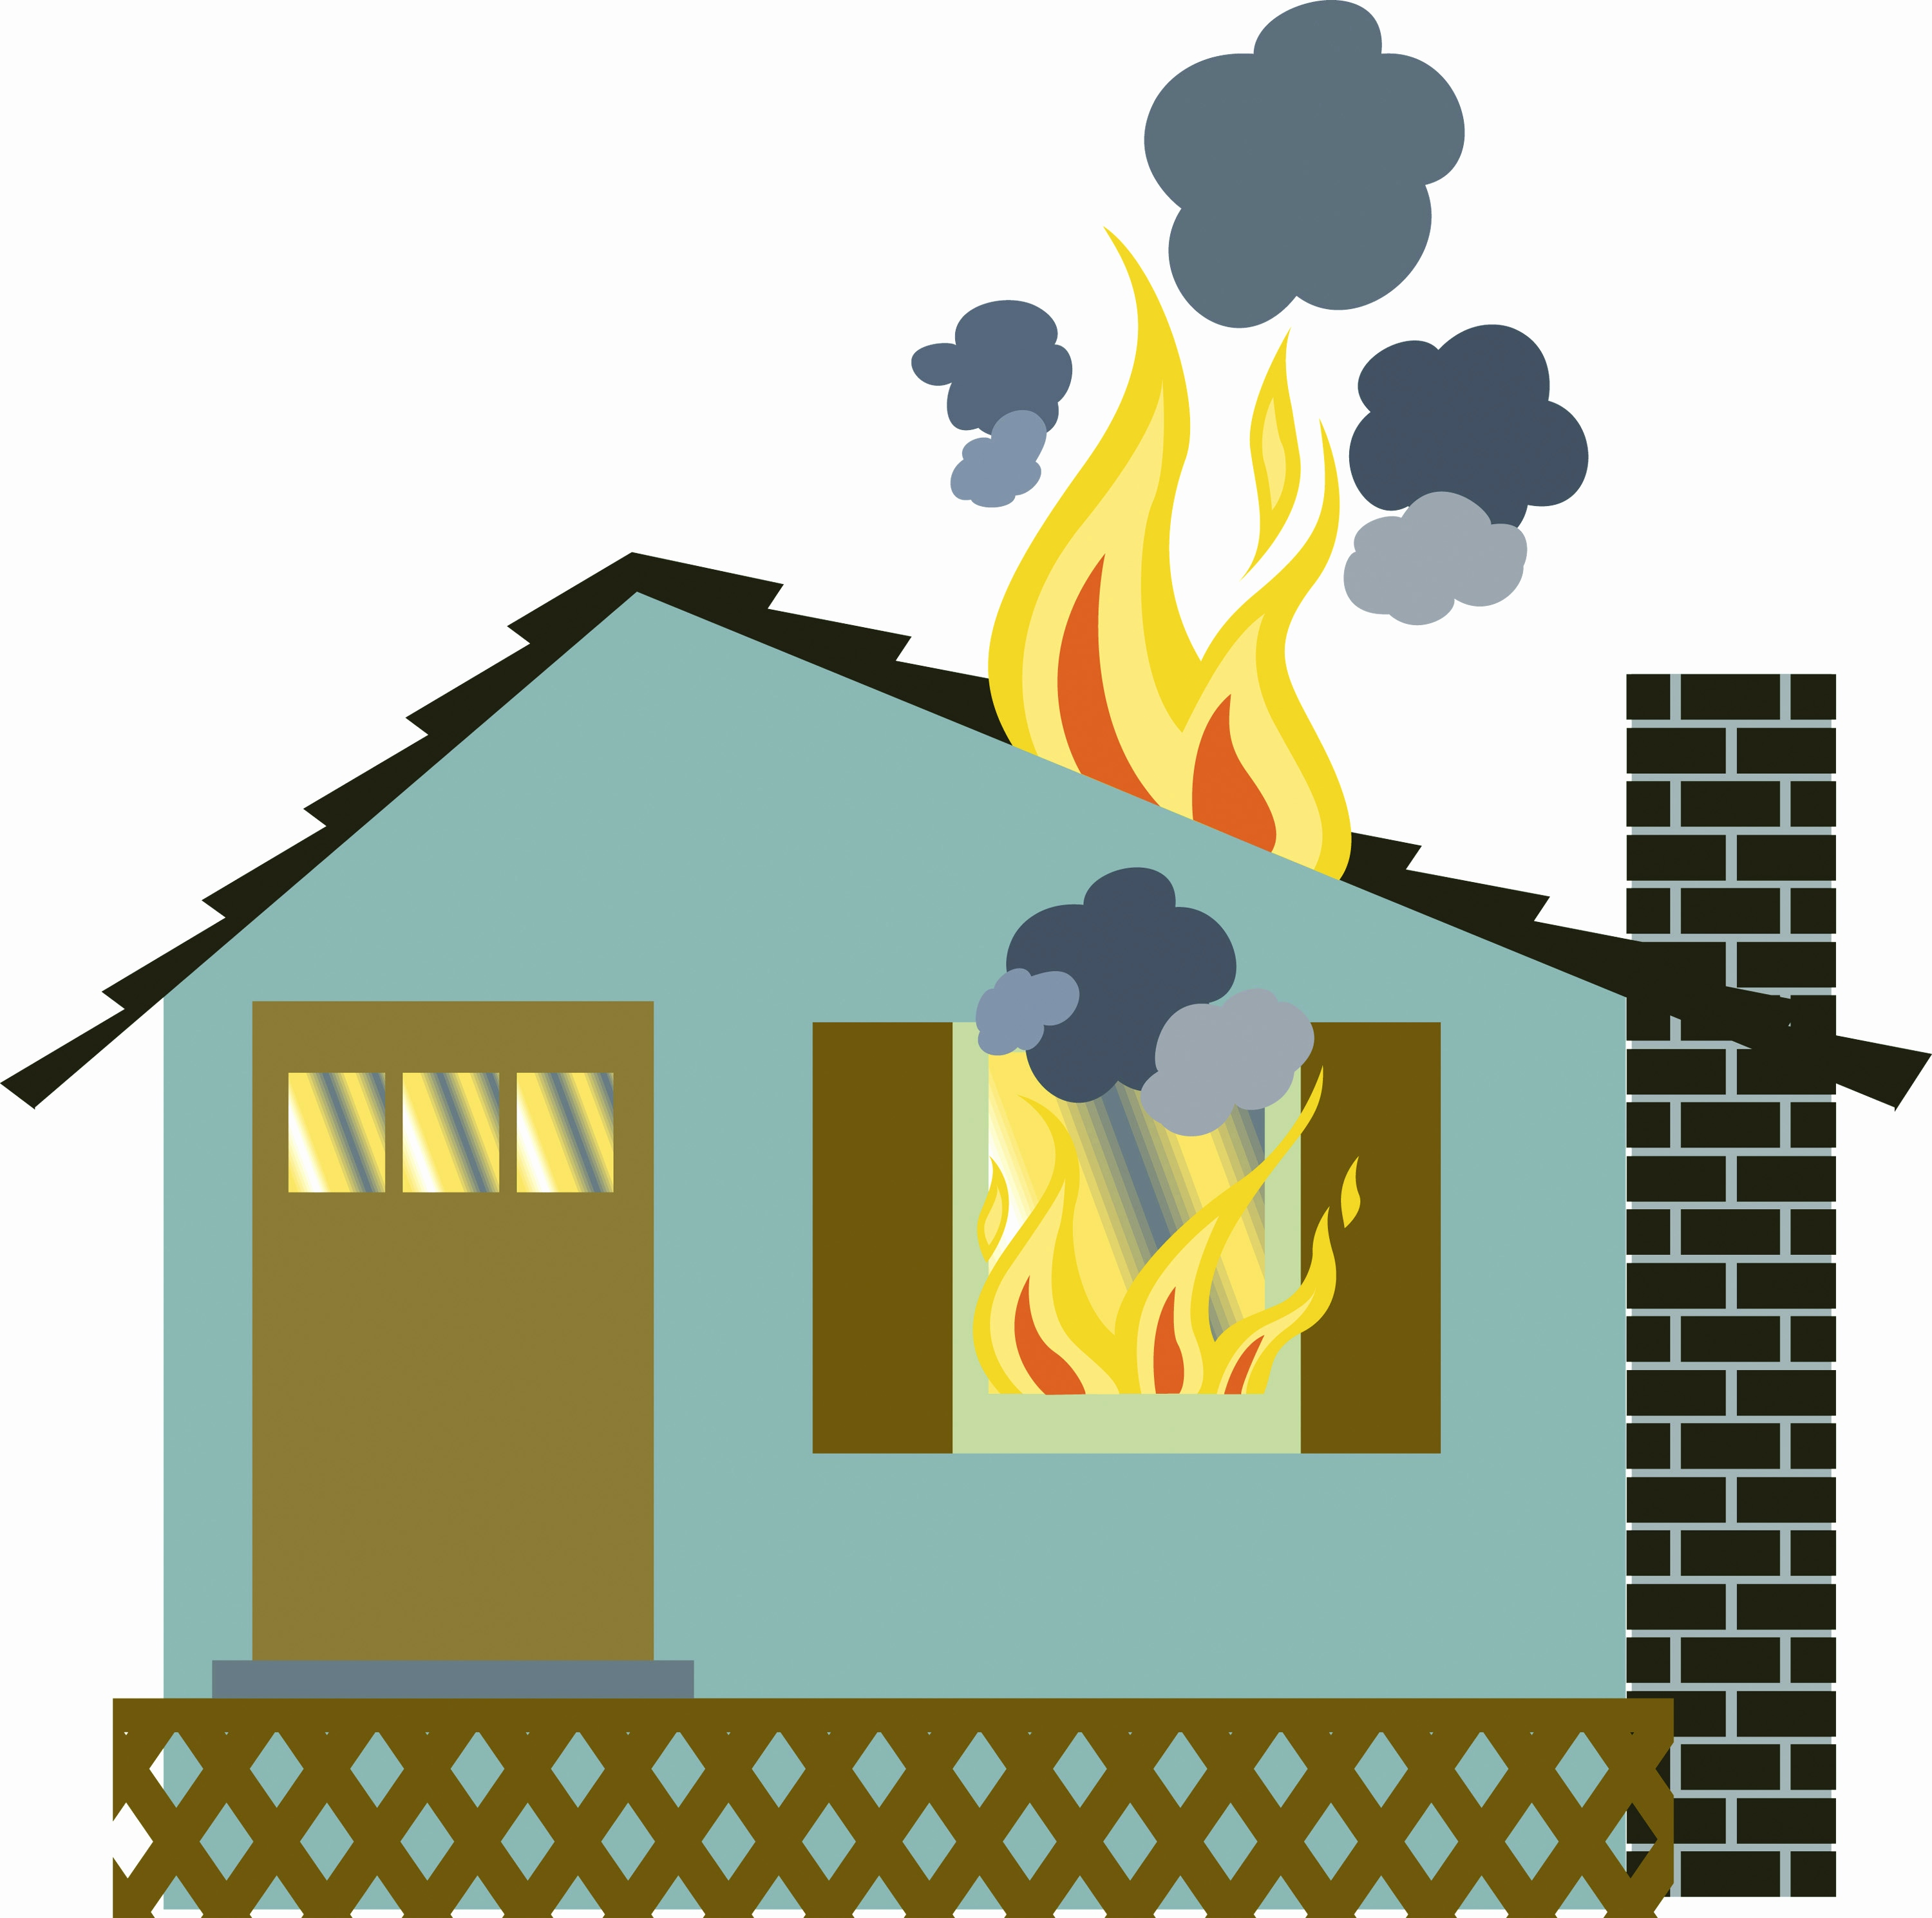 Fire clipart house fire. Vector illustration of a